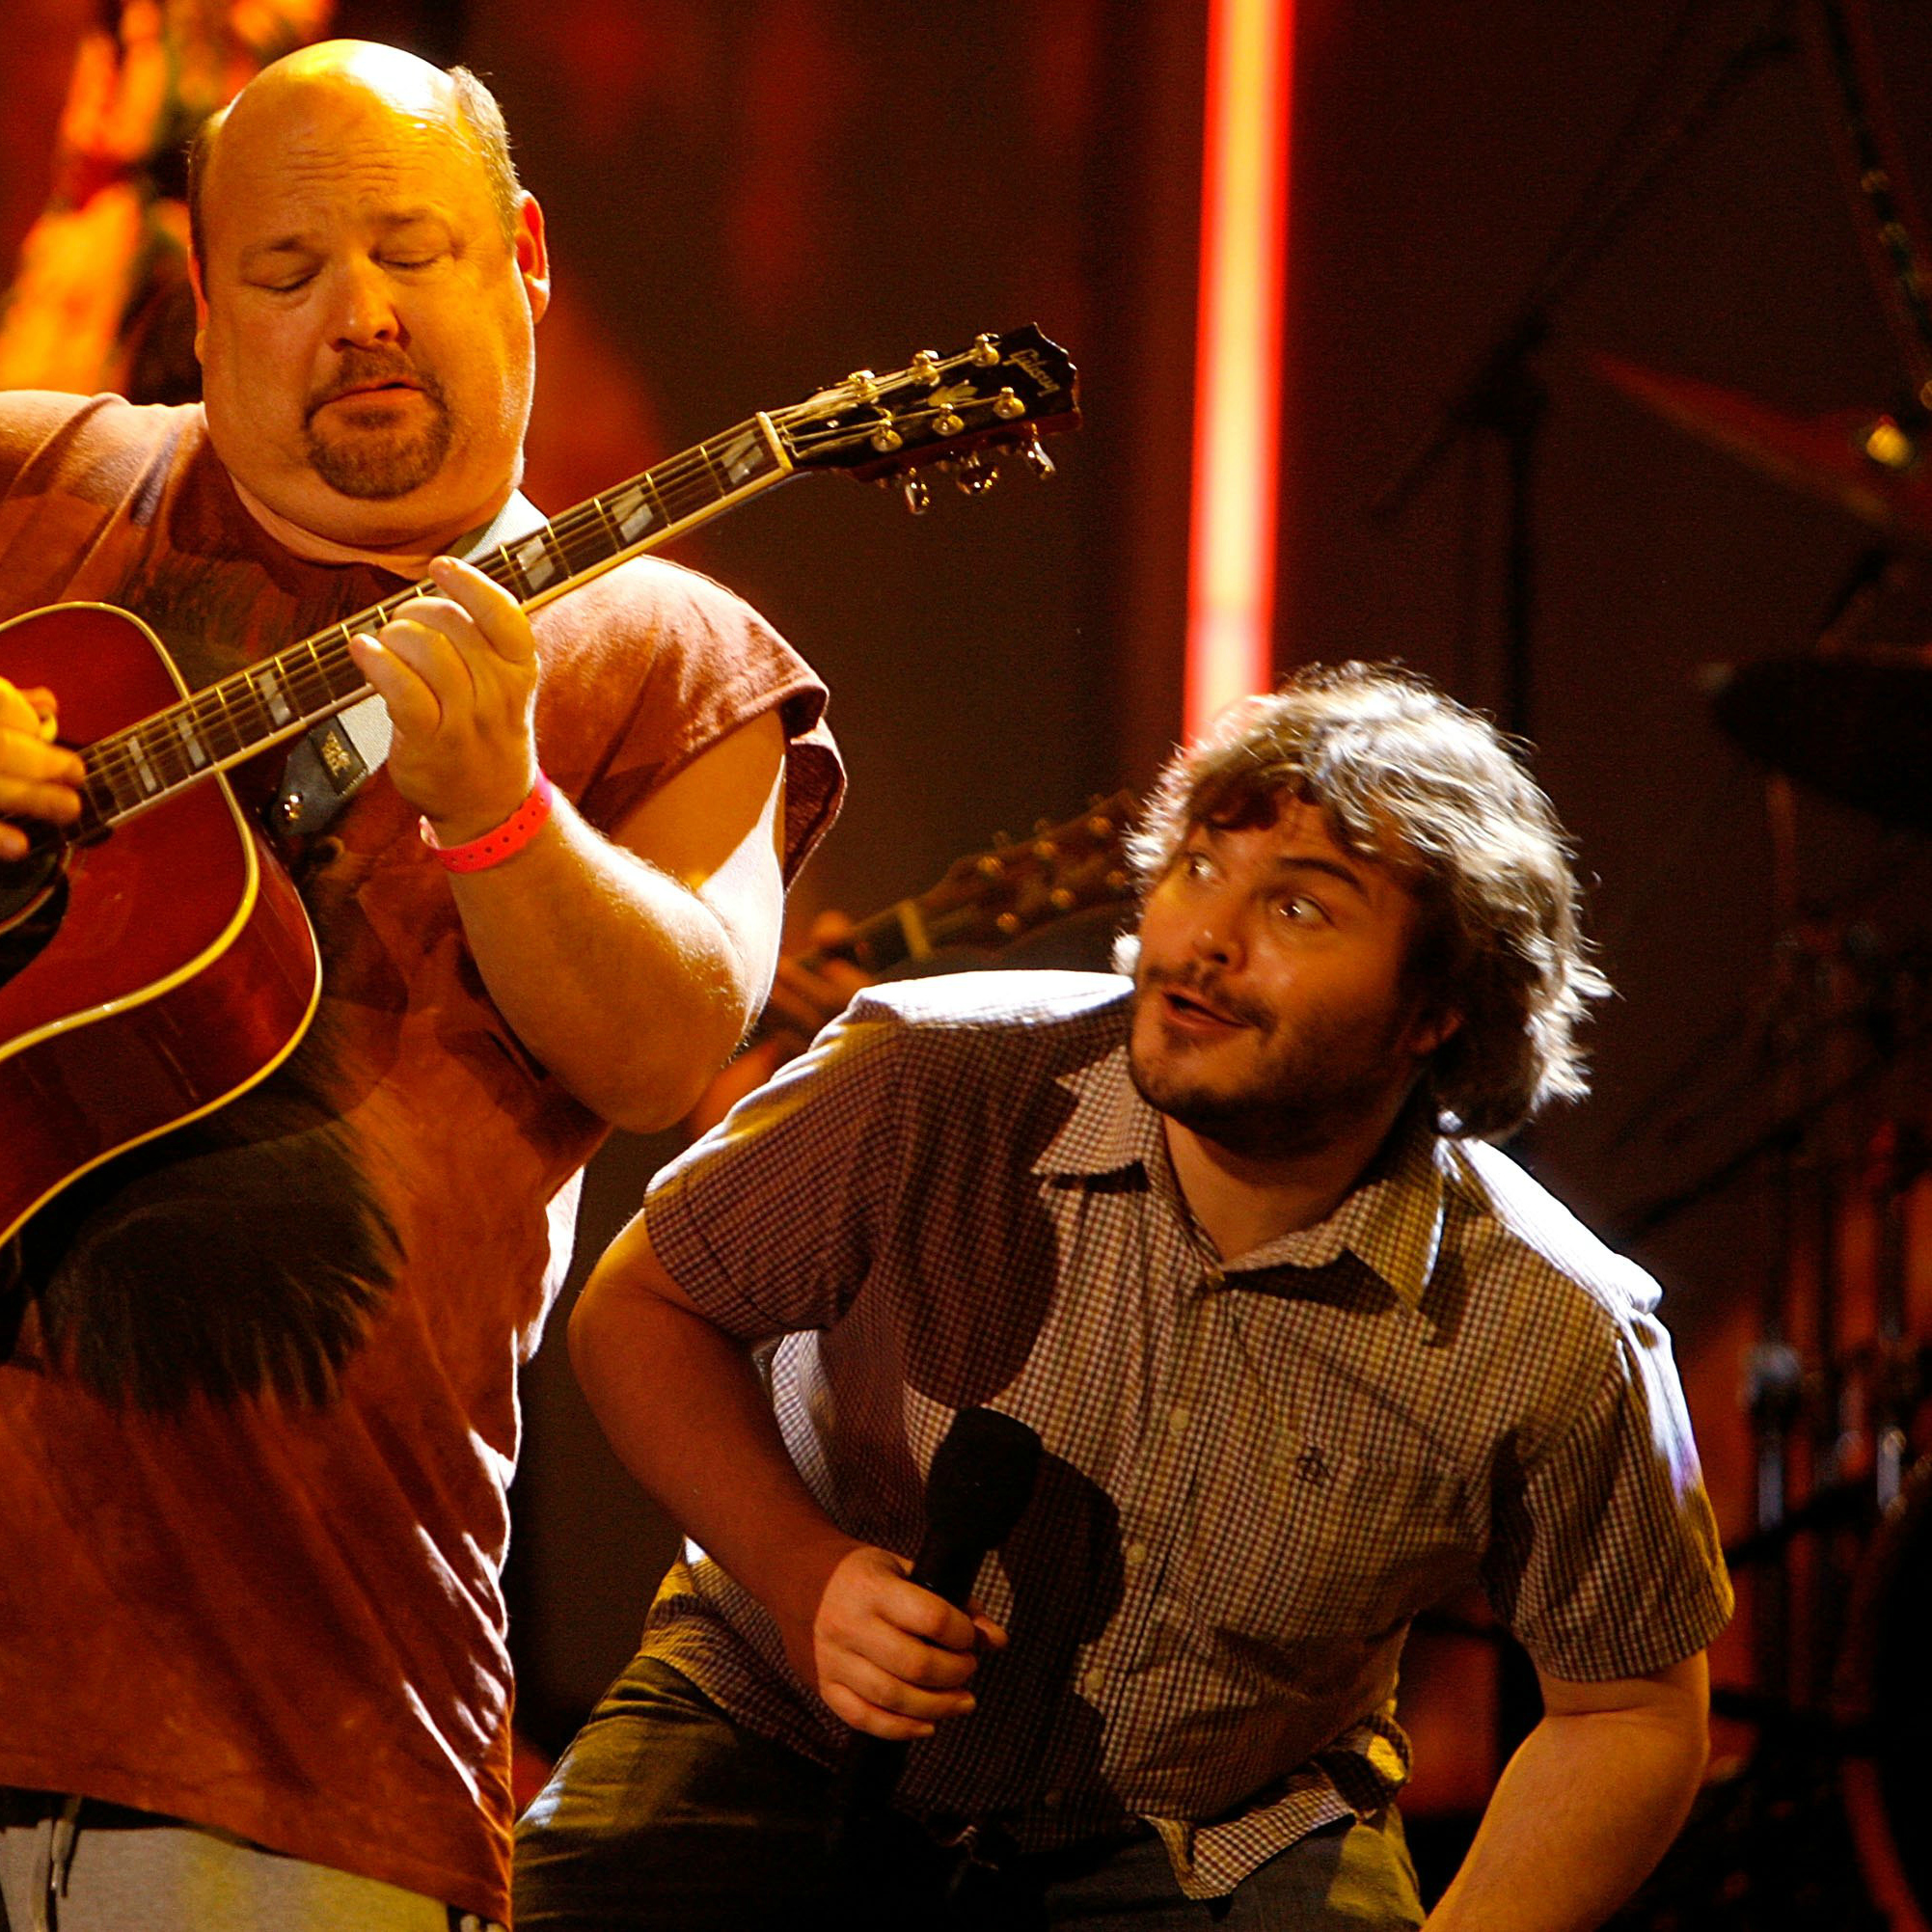 tenacious d movie - HD 2003×2003